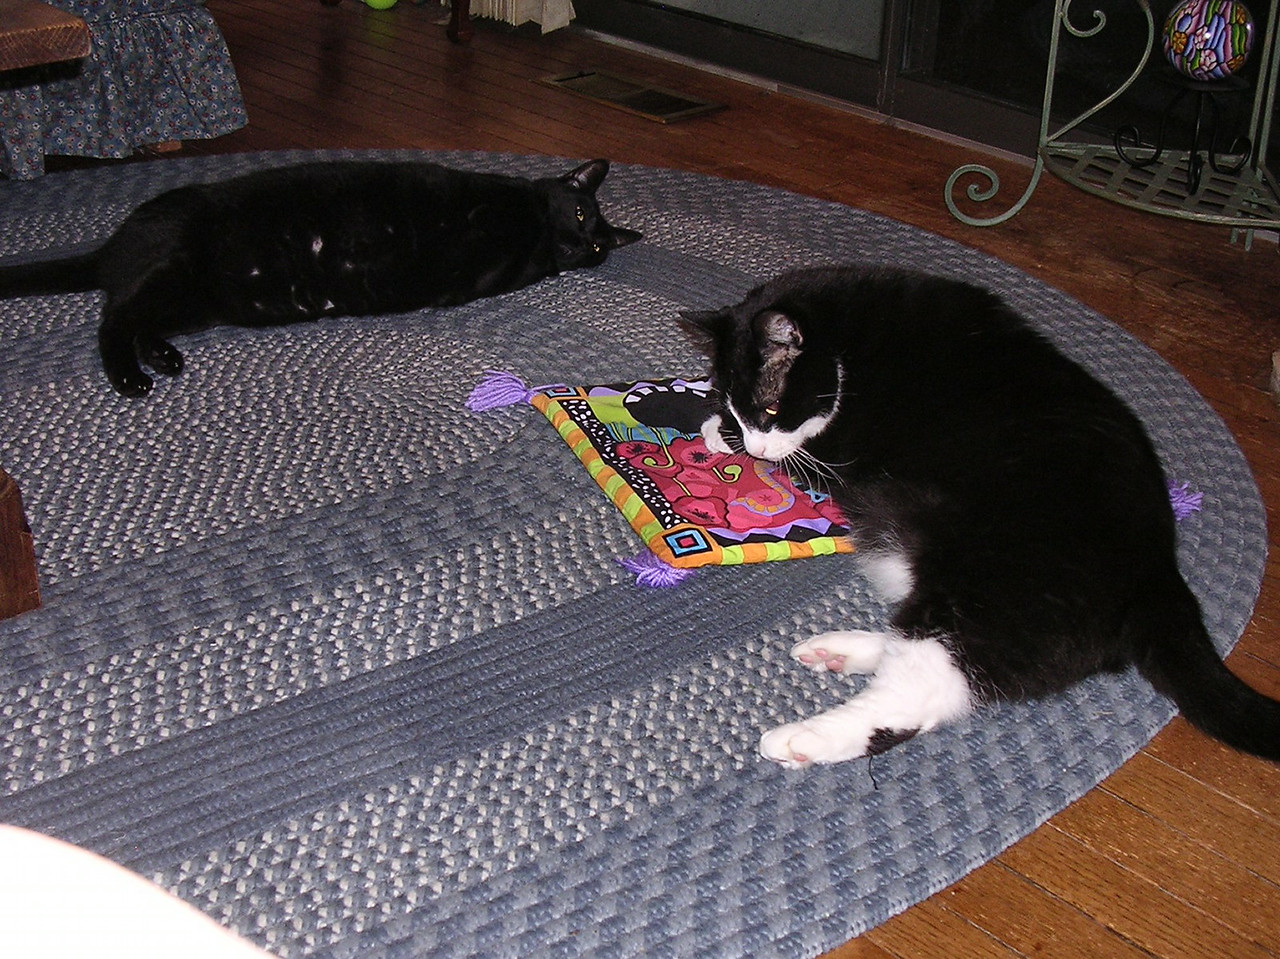 VAL: I'm so glad they brought me this present.  FRIDAY: Isn't he <i>ever</i> going to let me have a turn?